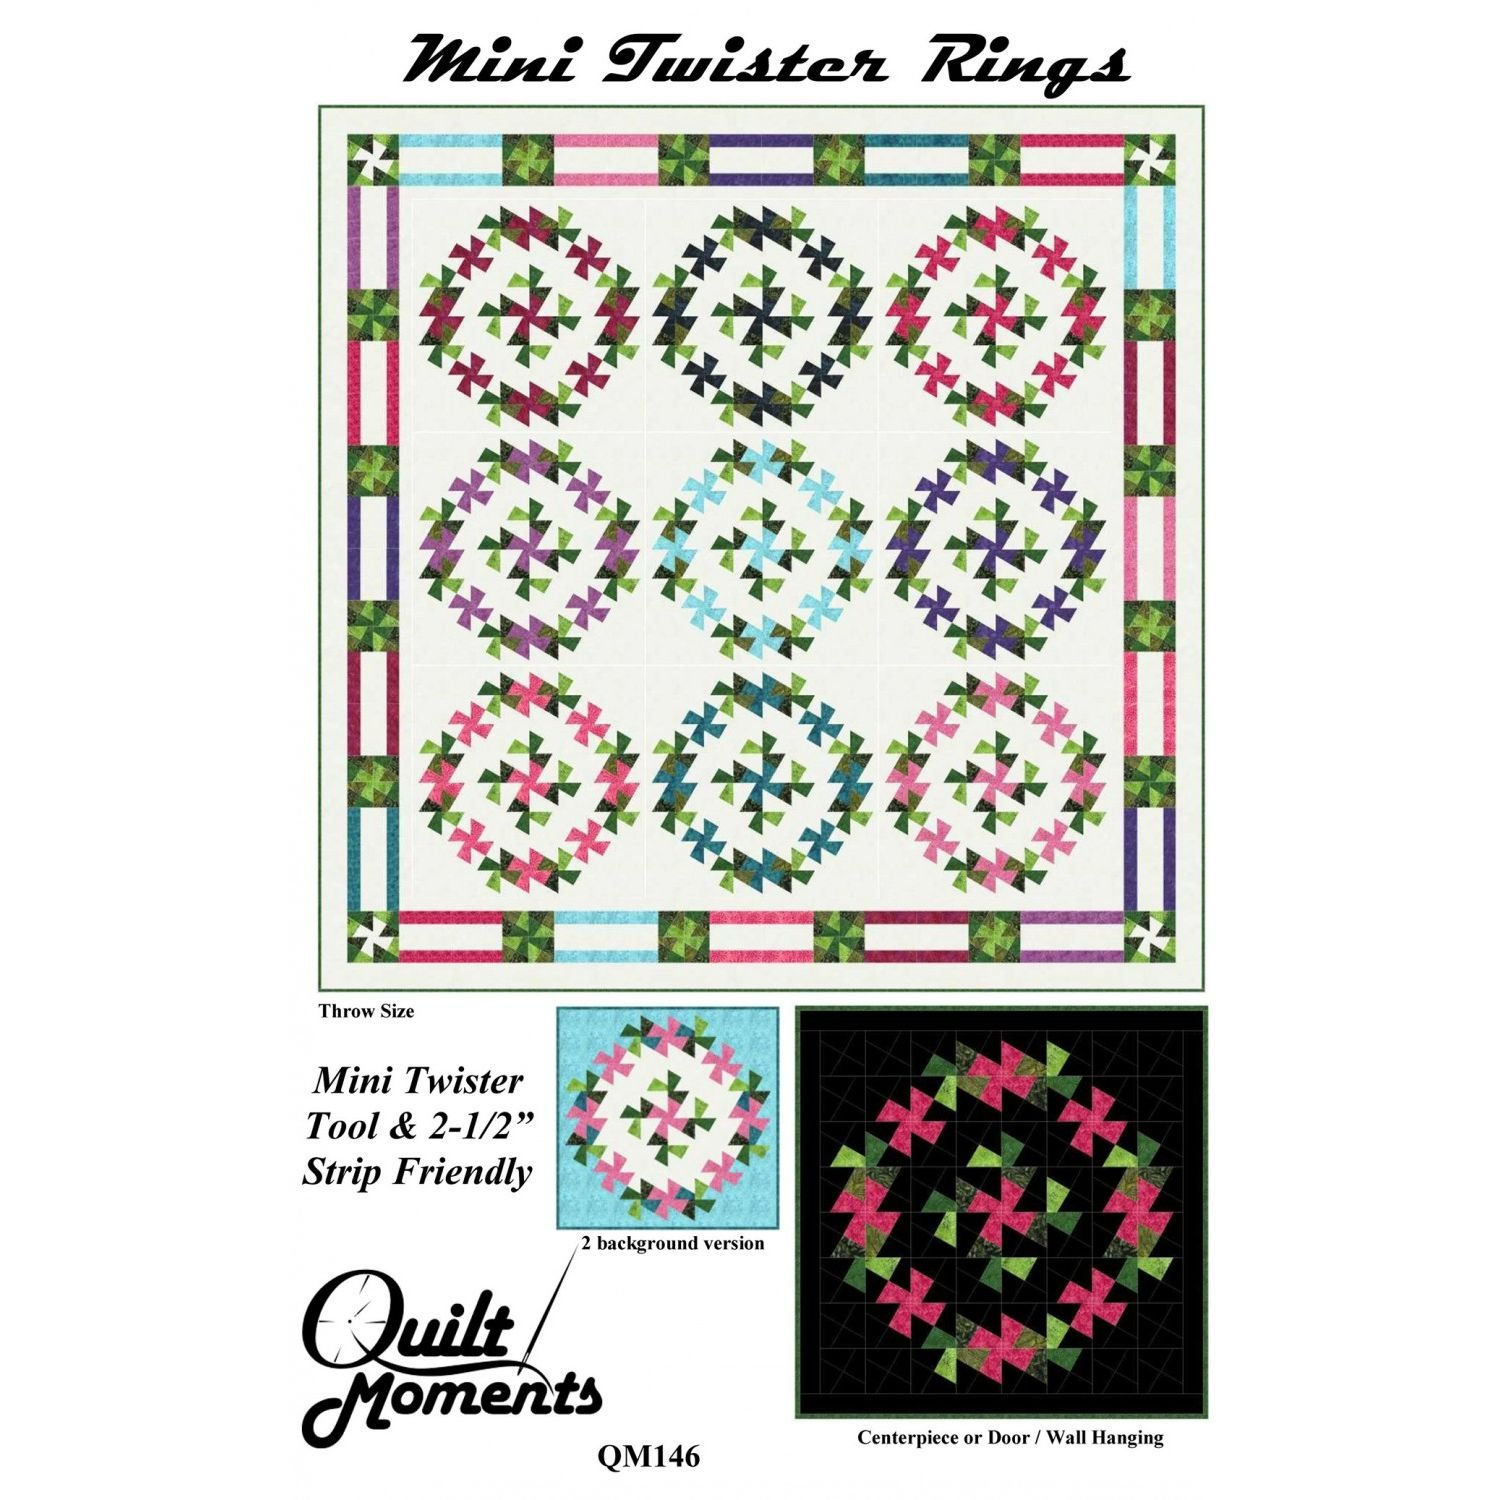 Mini Twister Rings Quilt pattern by Quilt Moments